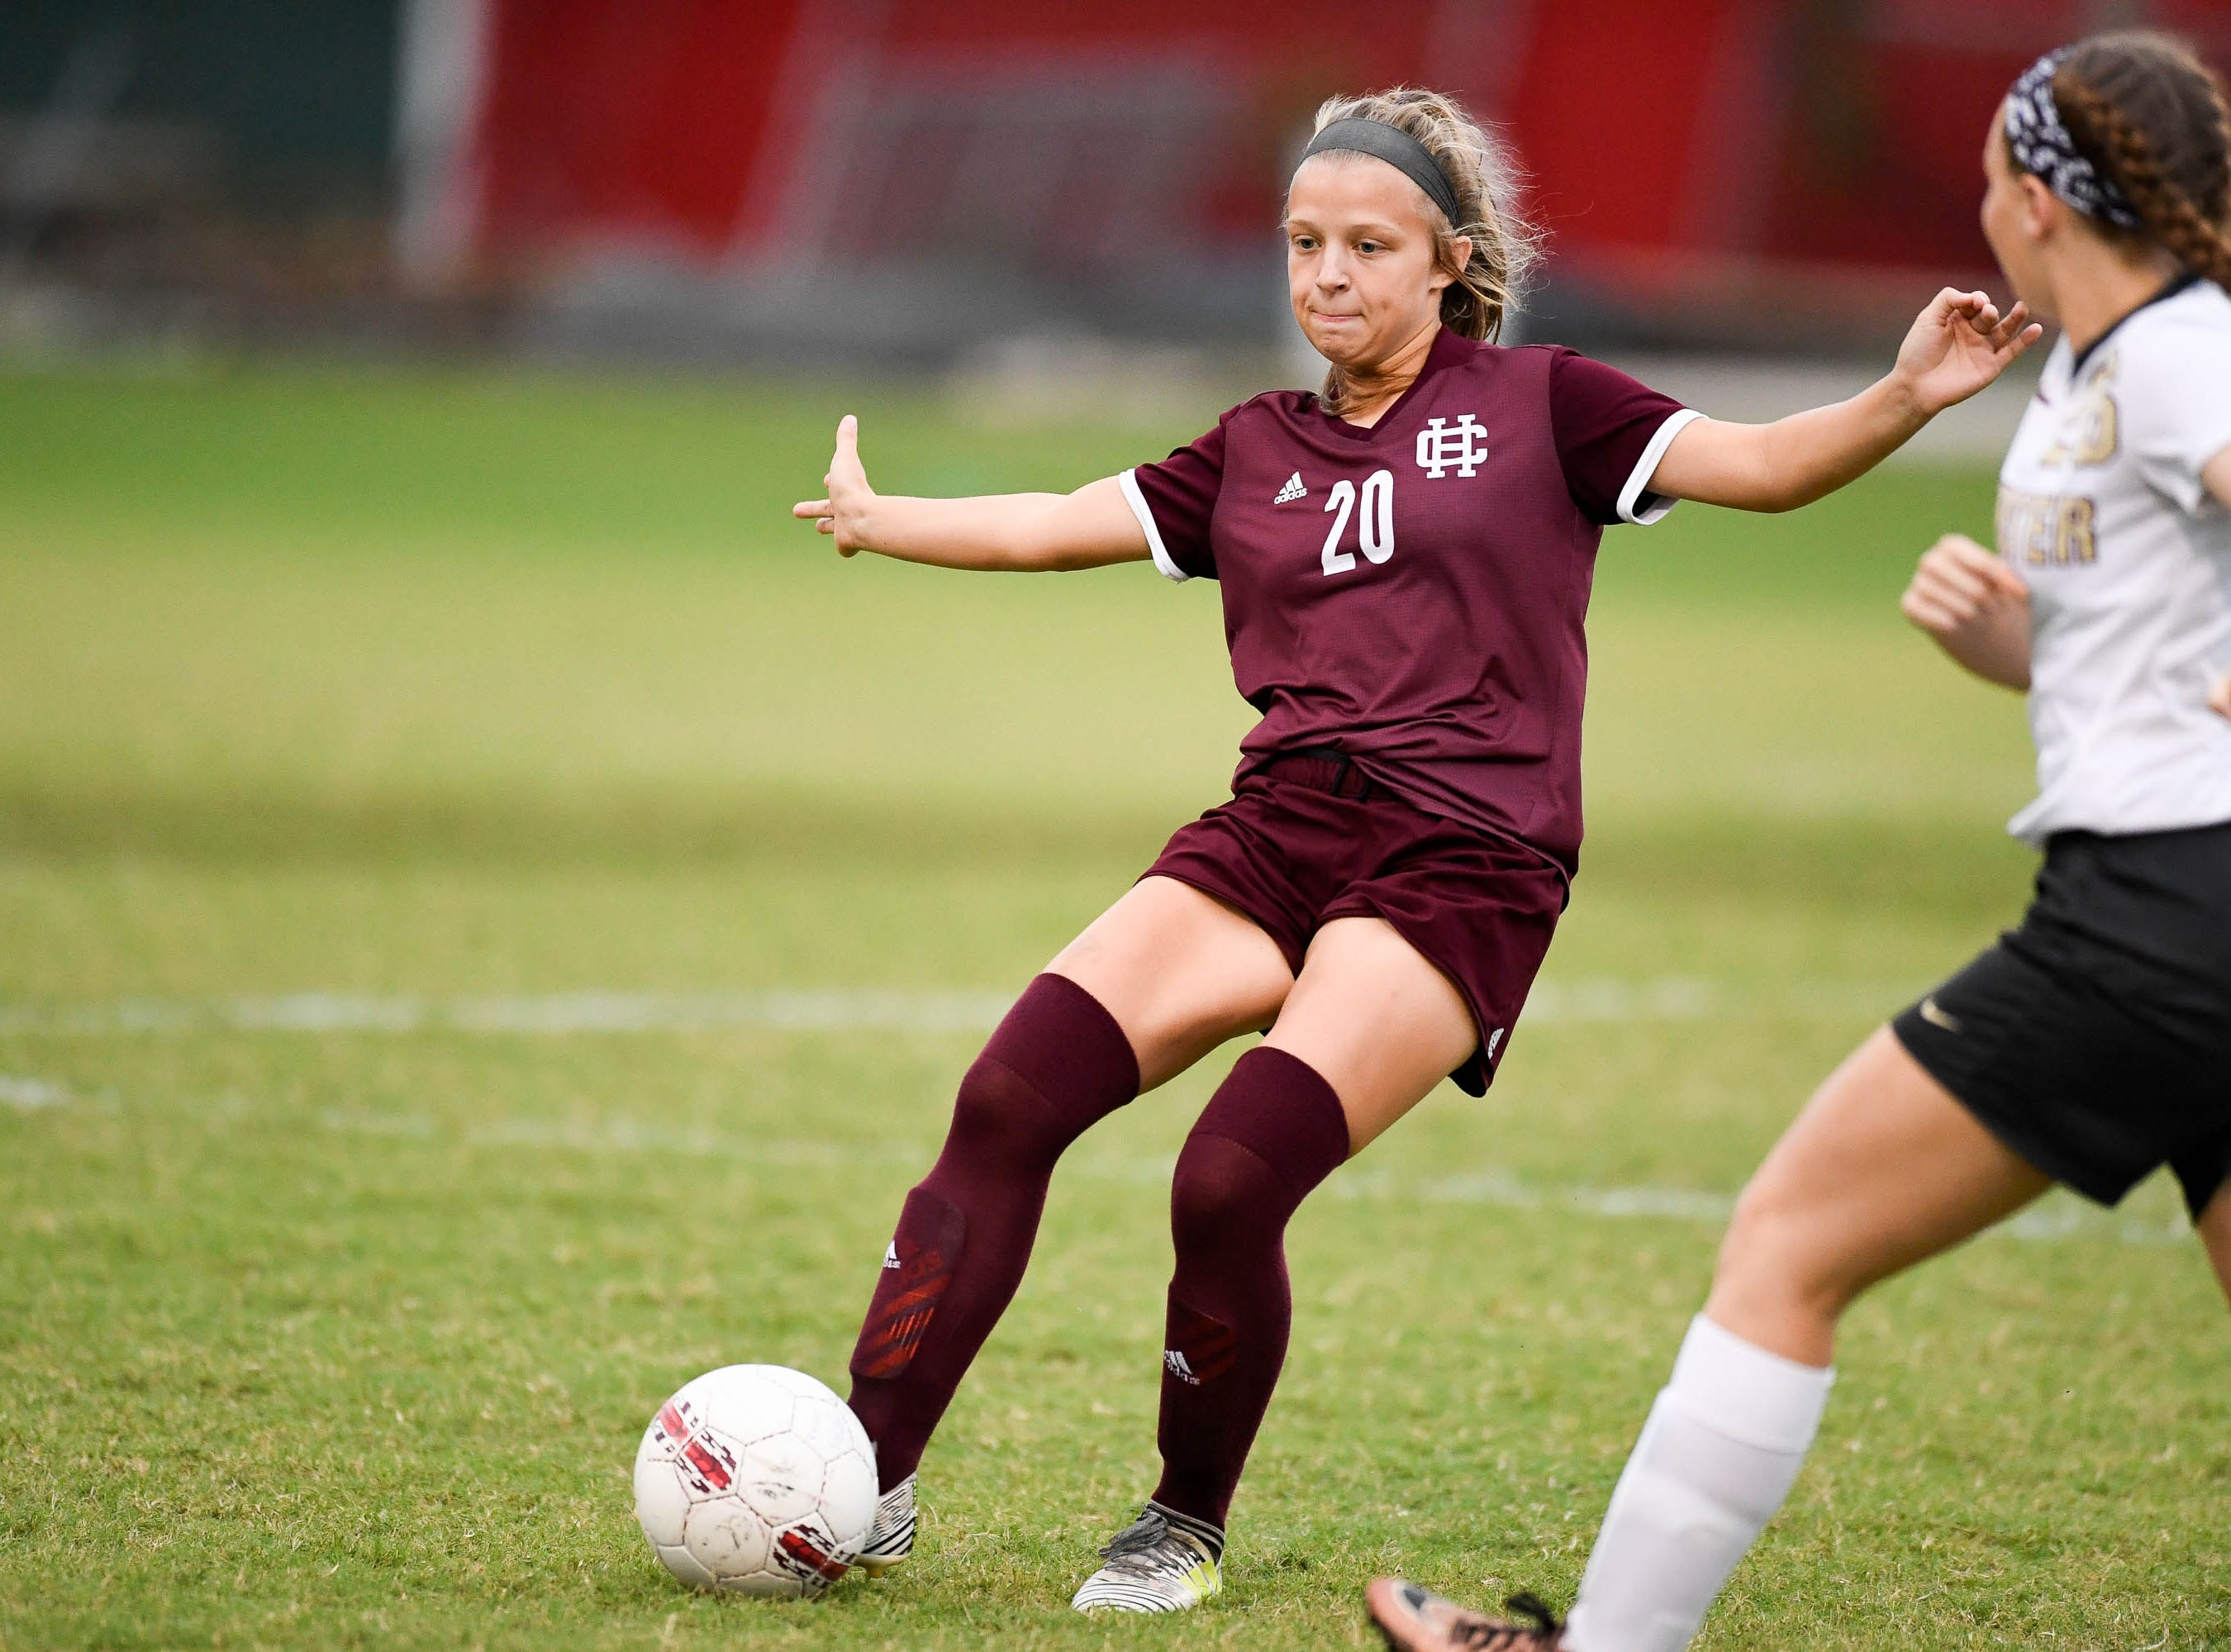 Henderson's Morgan Greene (20) passes the ball as the Henderson County Lady Colonels play the Webster County Lady Trojans in the Sixth District Soccer Tournament at Colonel Field Wednesdayt, October 10, 2018.